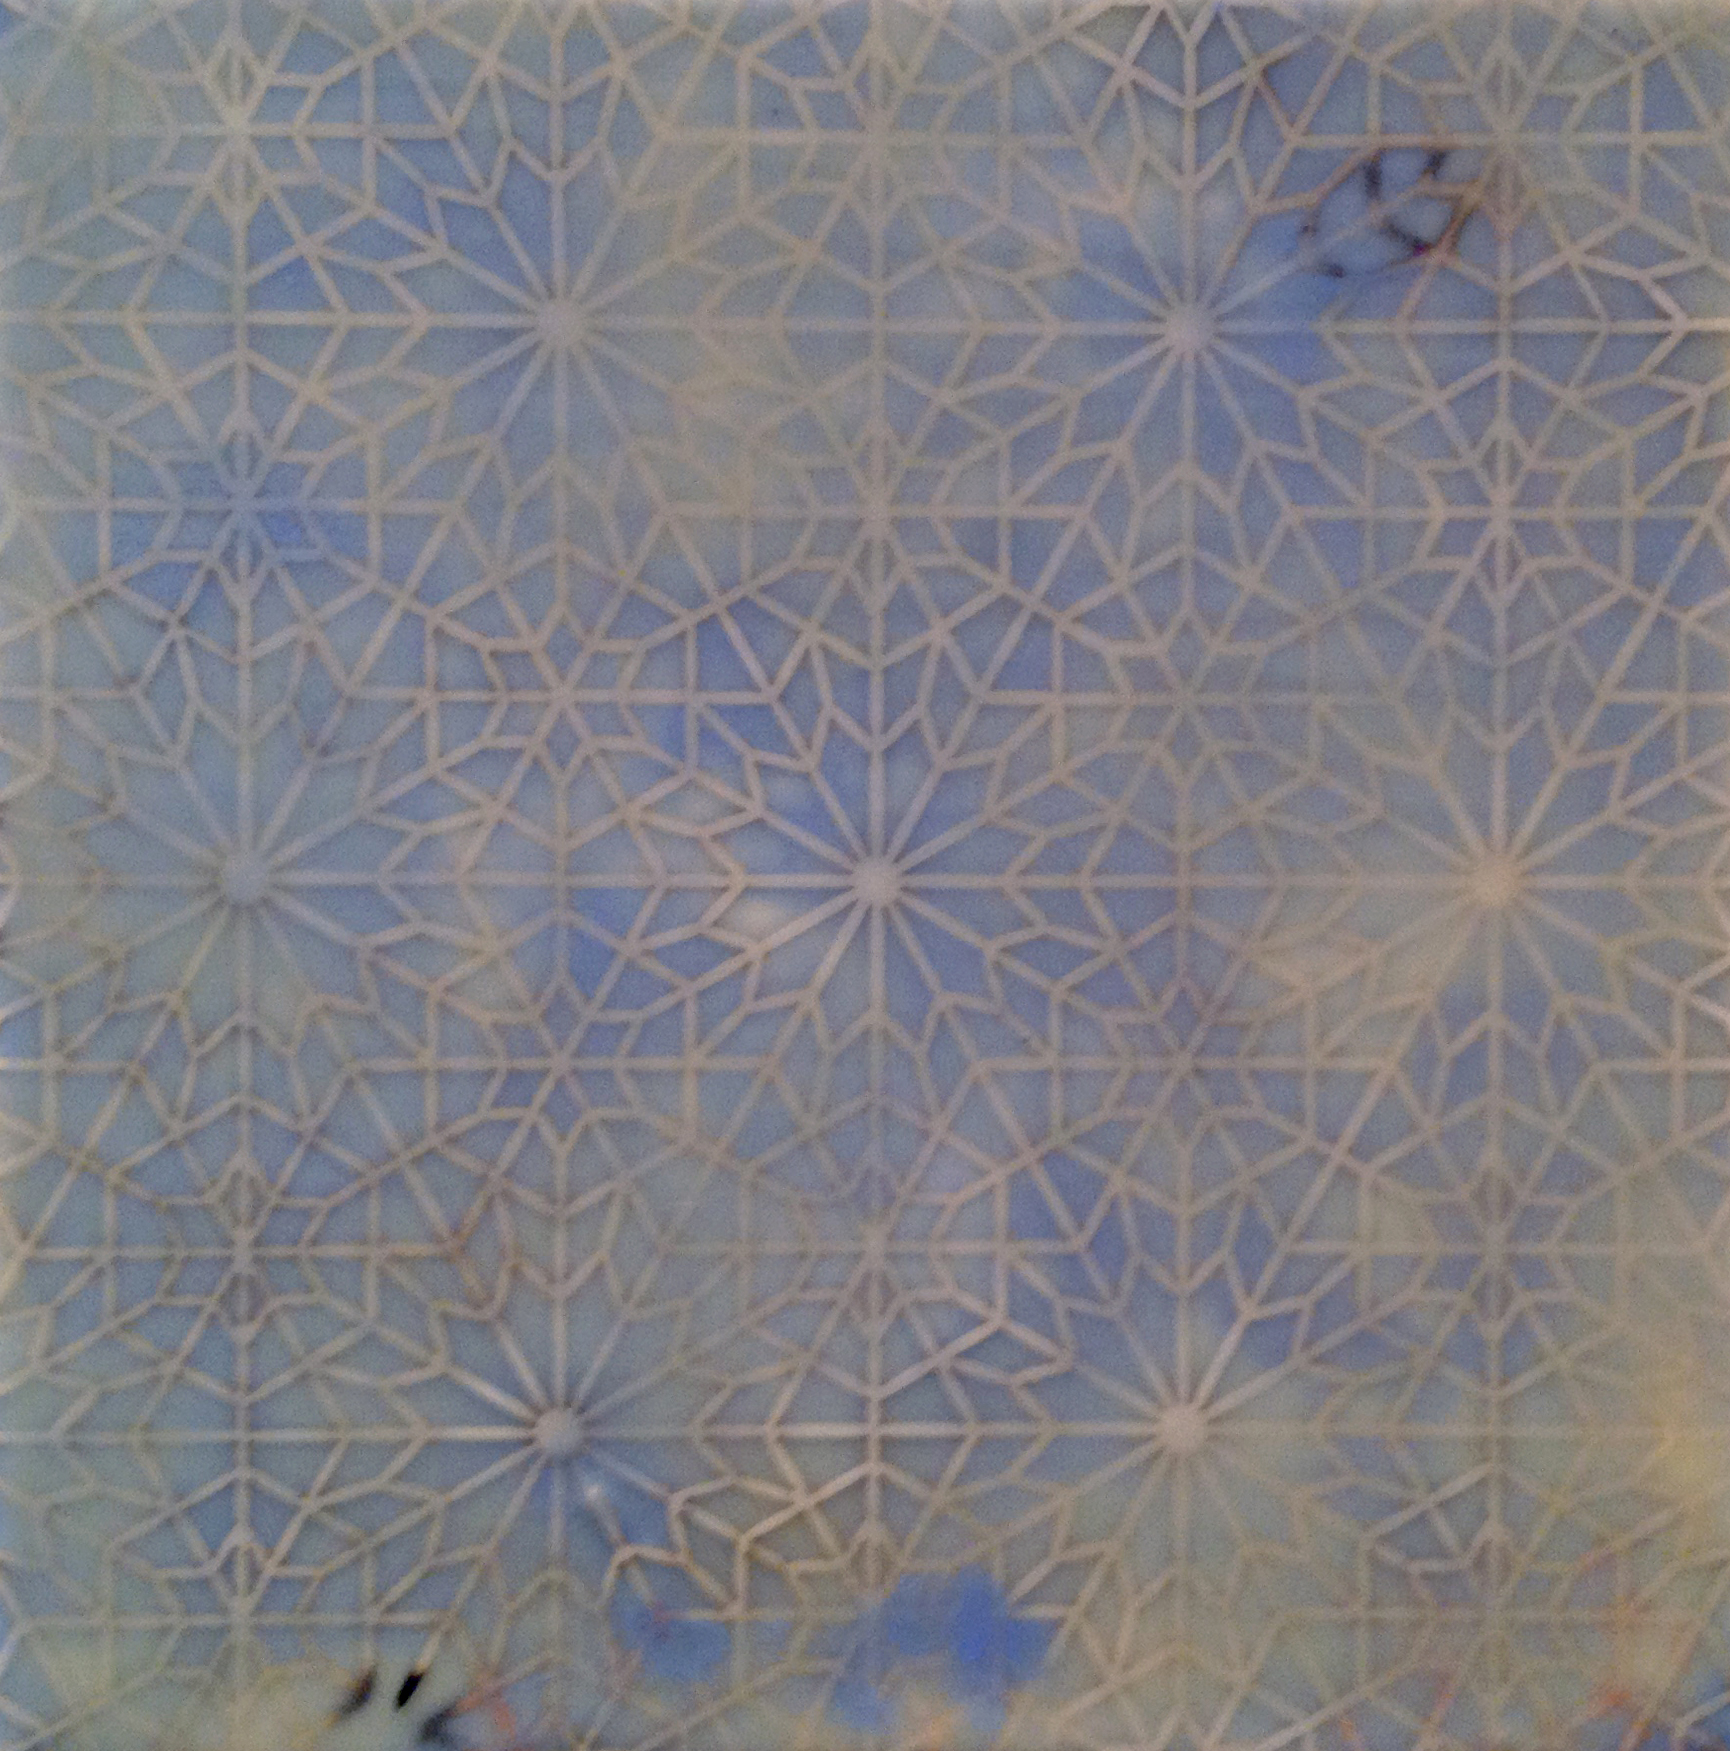 "Intersections: Blue   Encaustic and cut paper  12"" x 12"" x 2"" 2014"